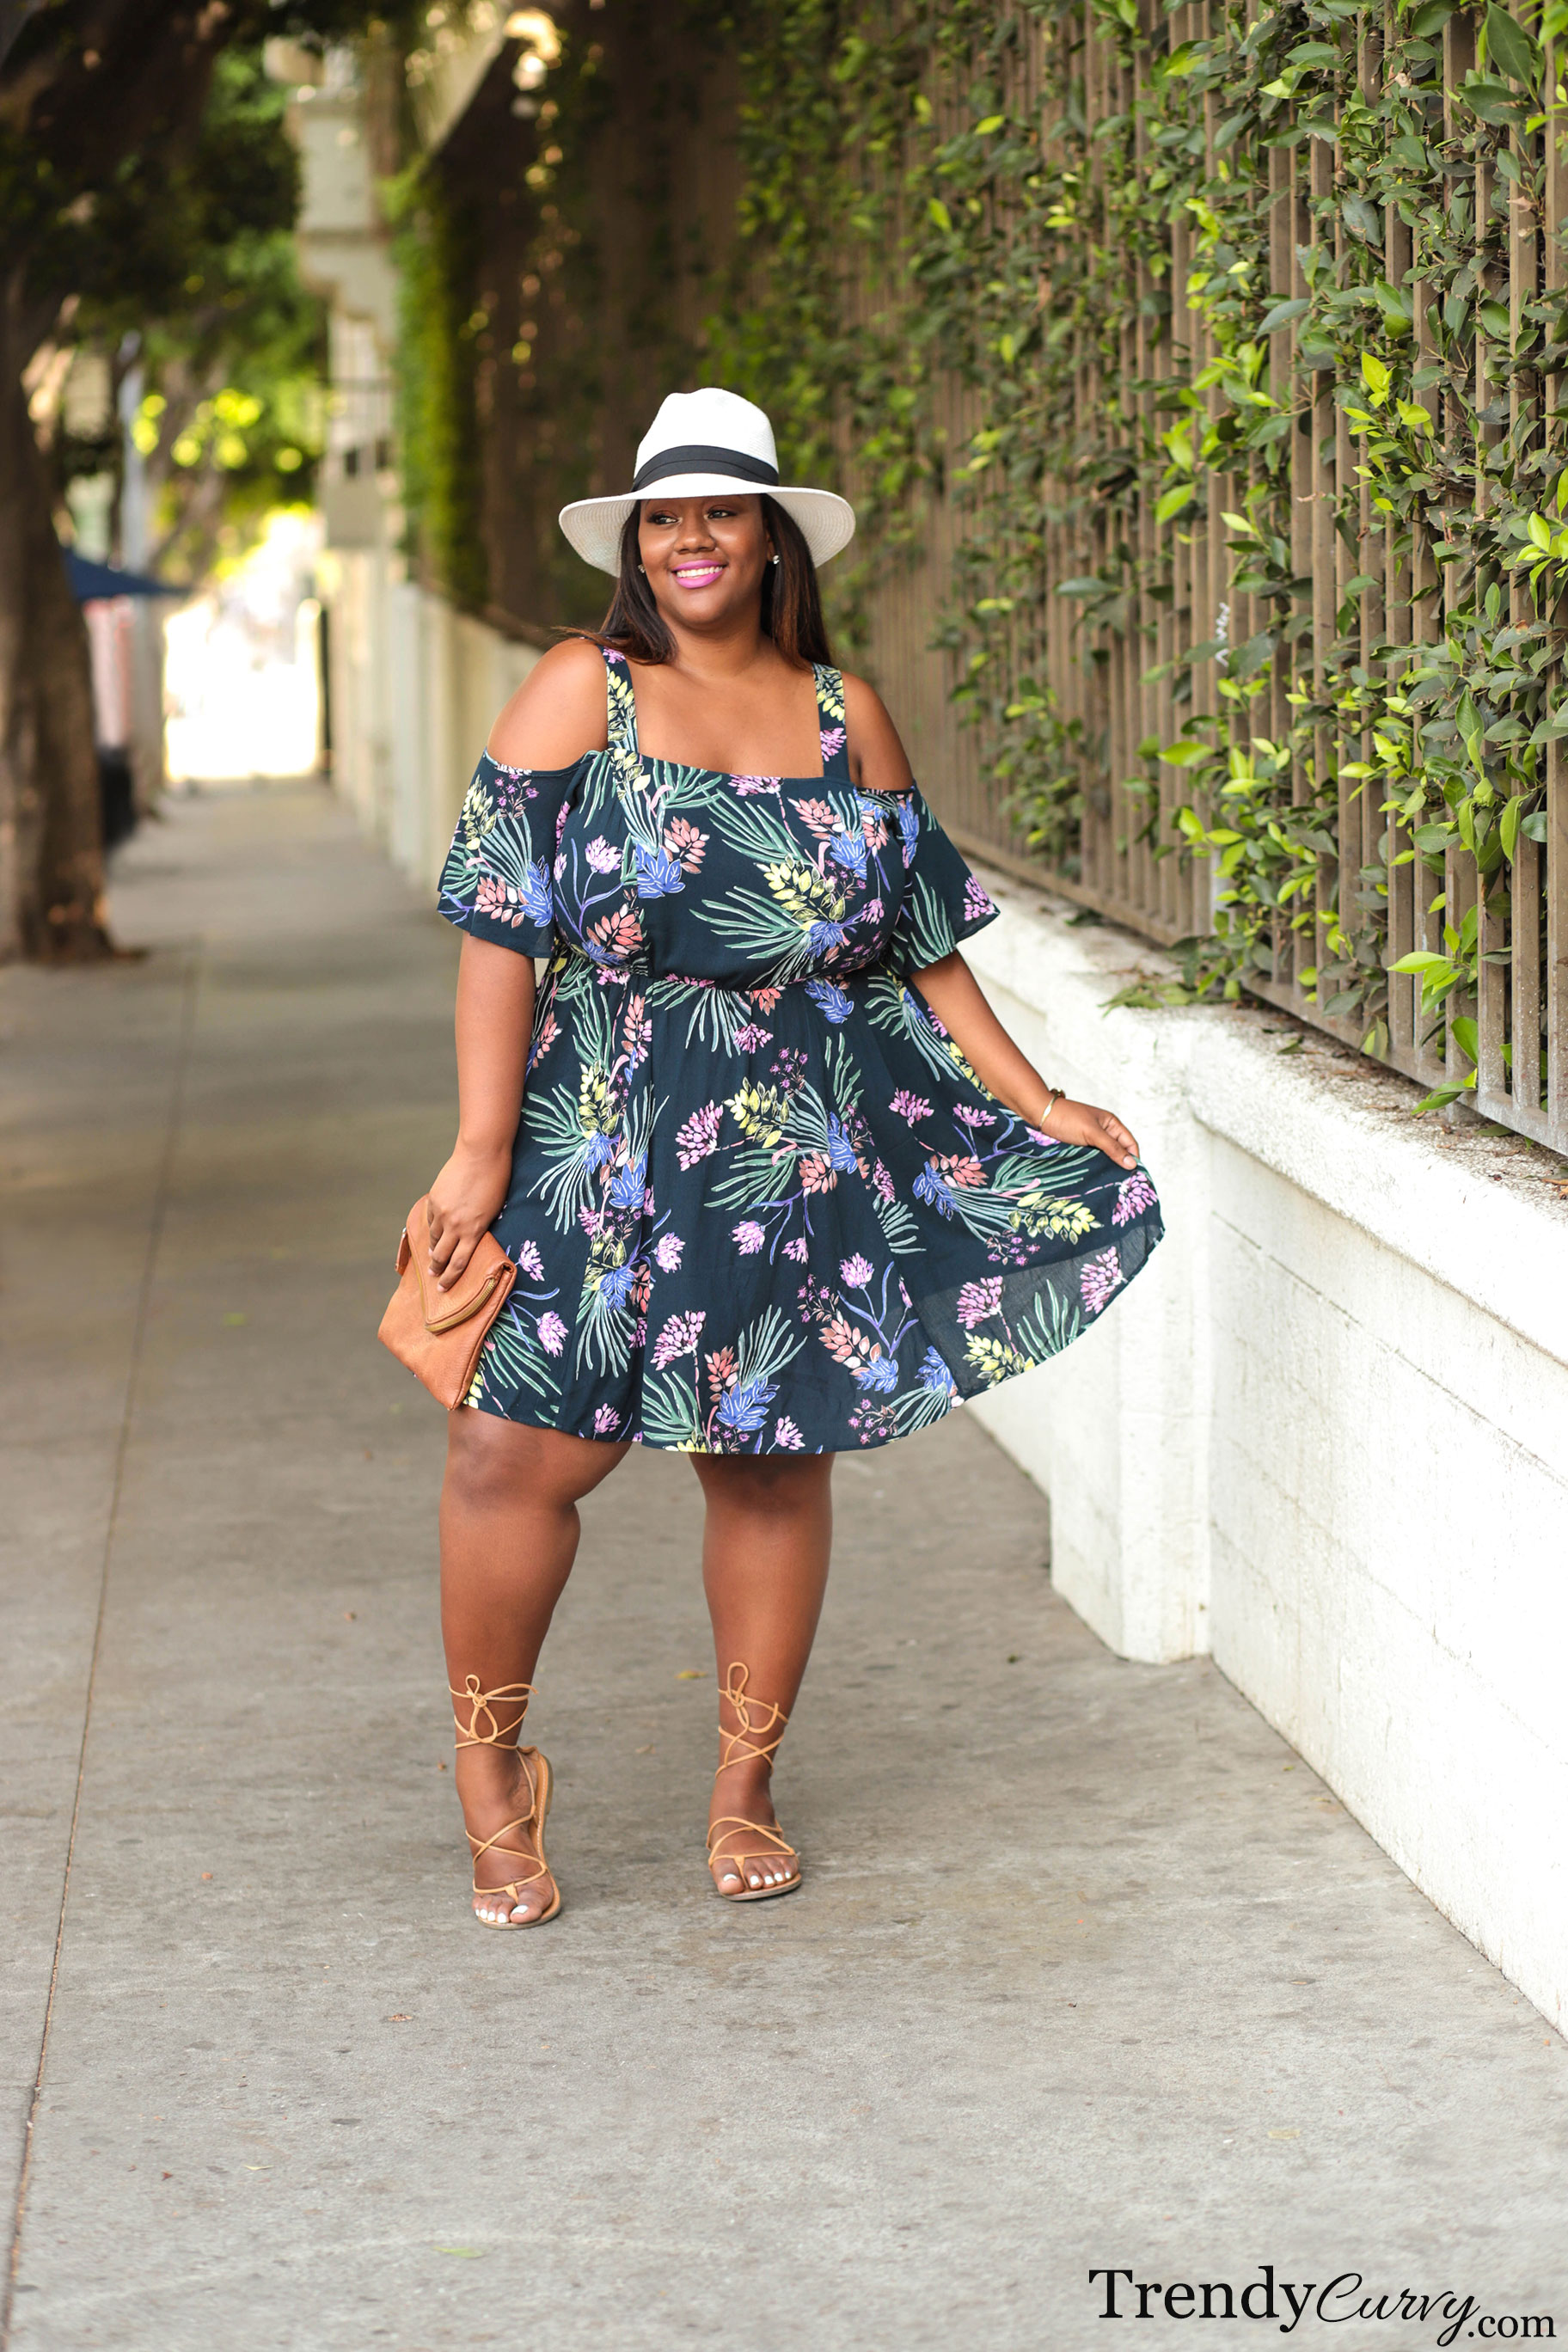 9aacc2caba Summer In The City - Trendy CurvyTrendy Curvy